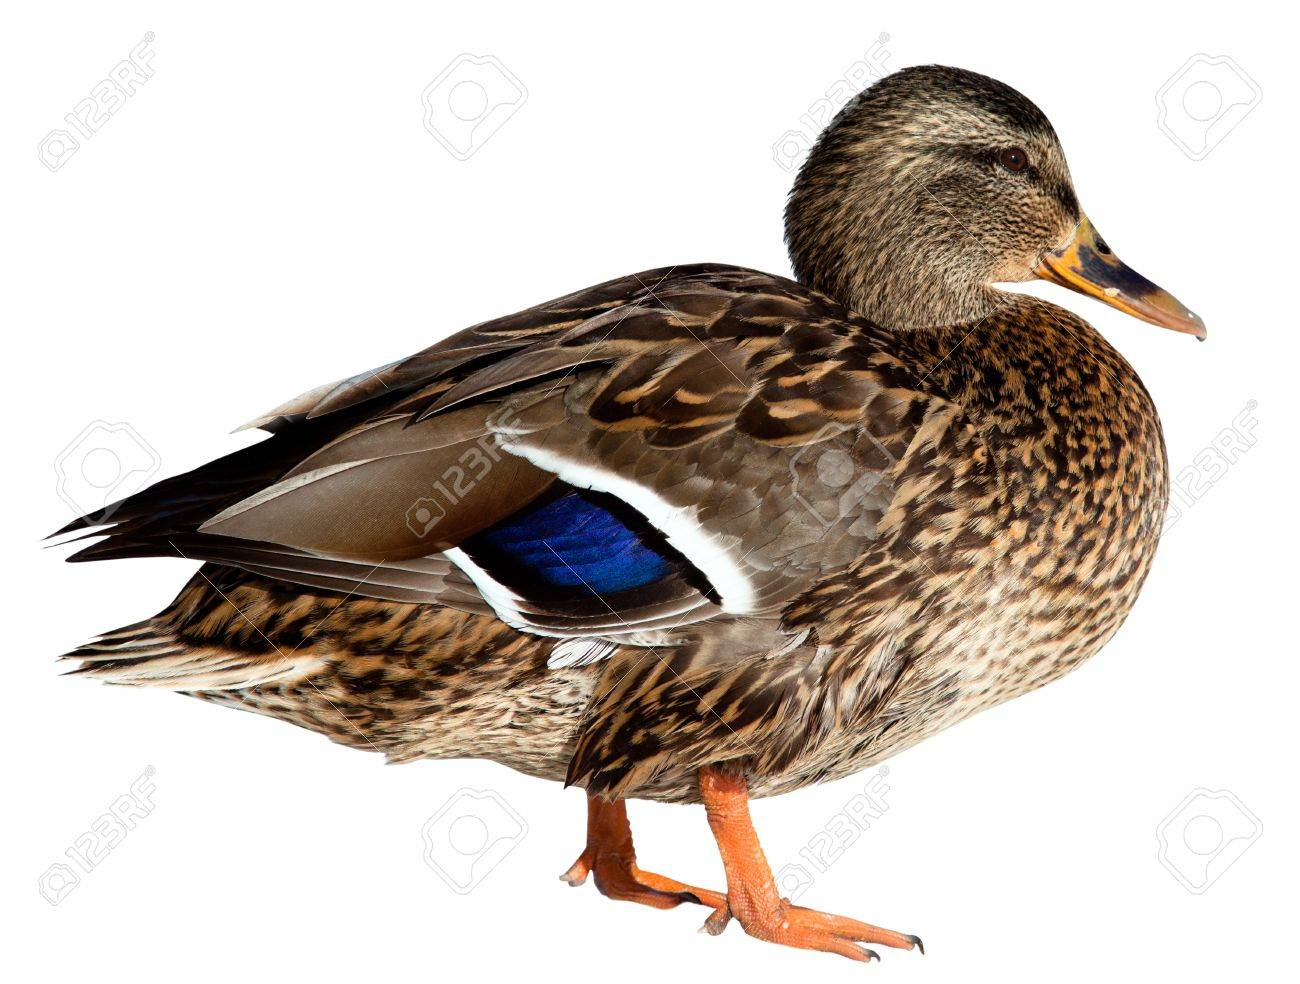 duck out of water images u0026 stock pictures royalty free duck out